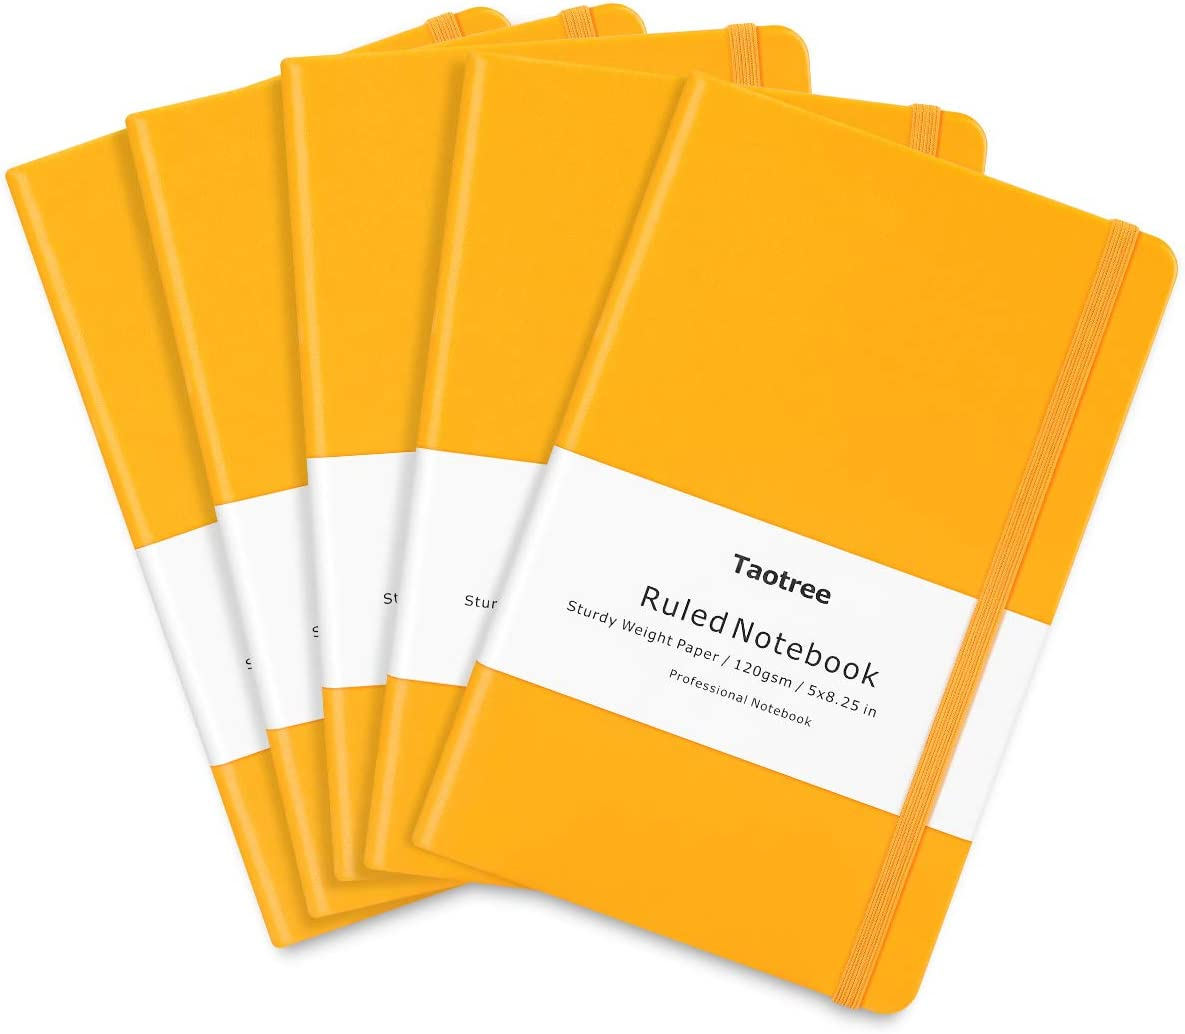 "5 Pack Journal Notebooks, Taotree Yellow Classic Ruled Writing Notebook, Hard Cover PU Leather, 120gsm Premium Thick Paper, Inner Pocket, 128 Pages, 5""×8.25"" for Office Business Supplies"